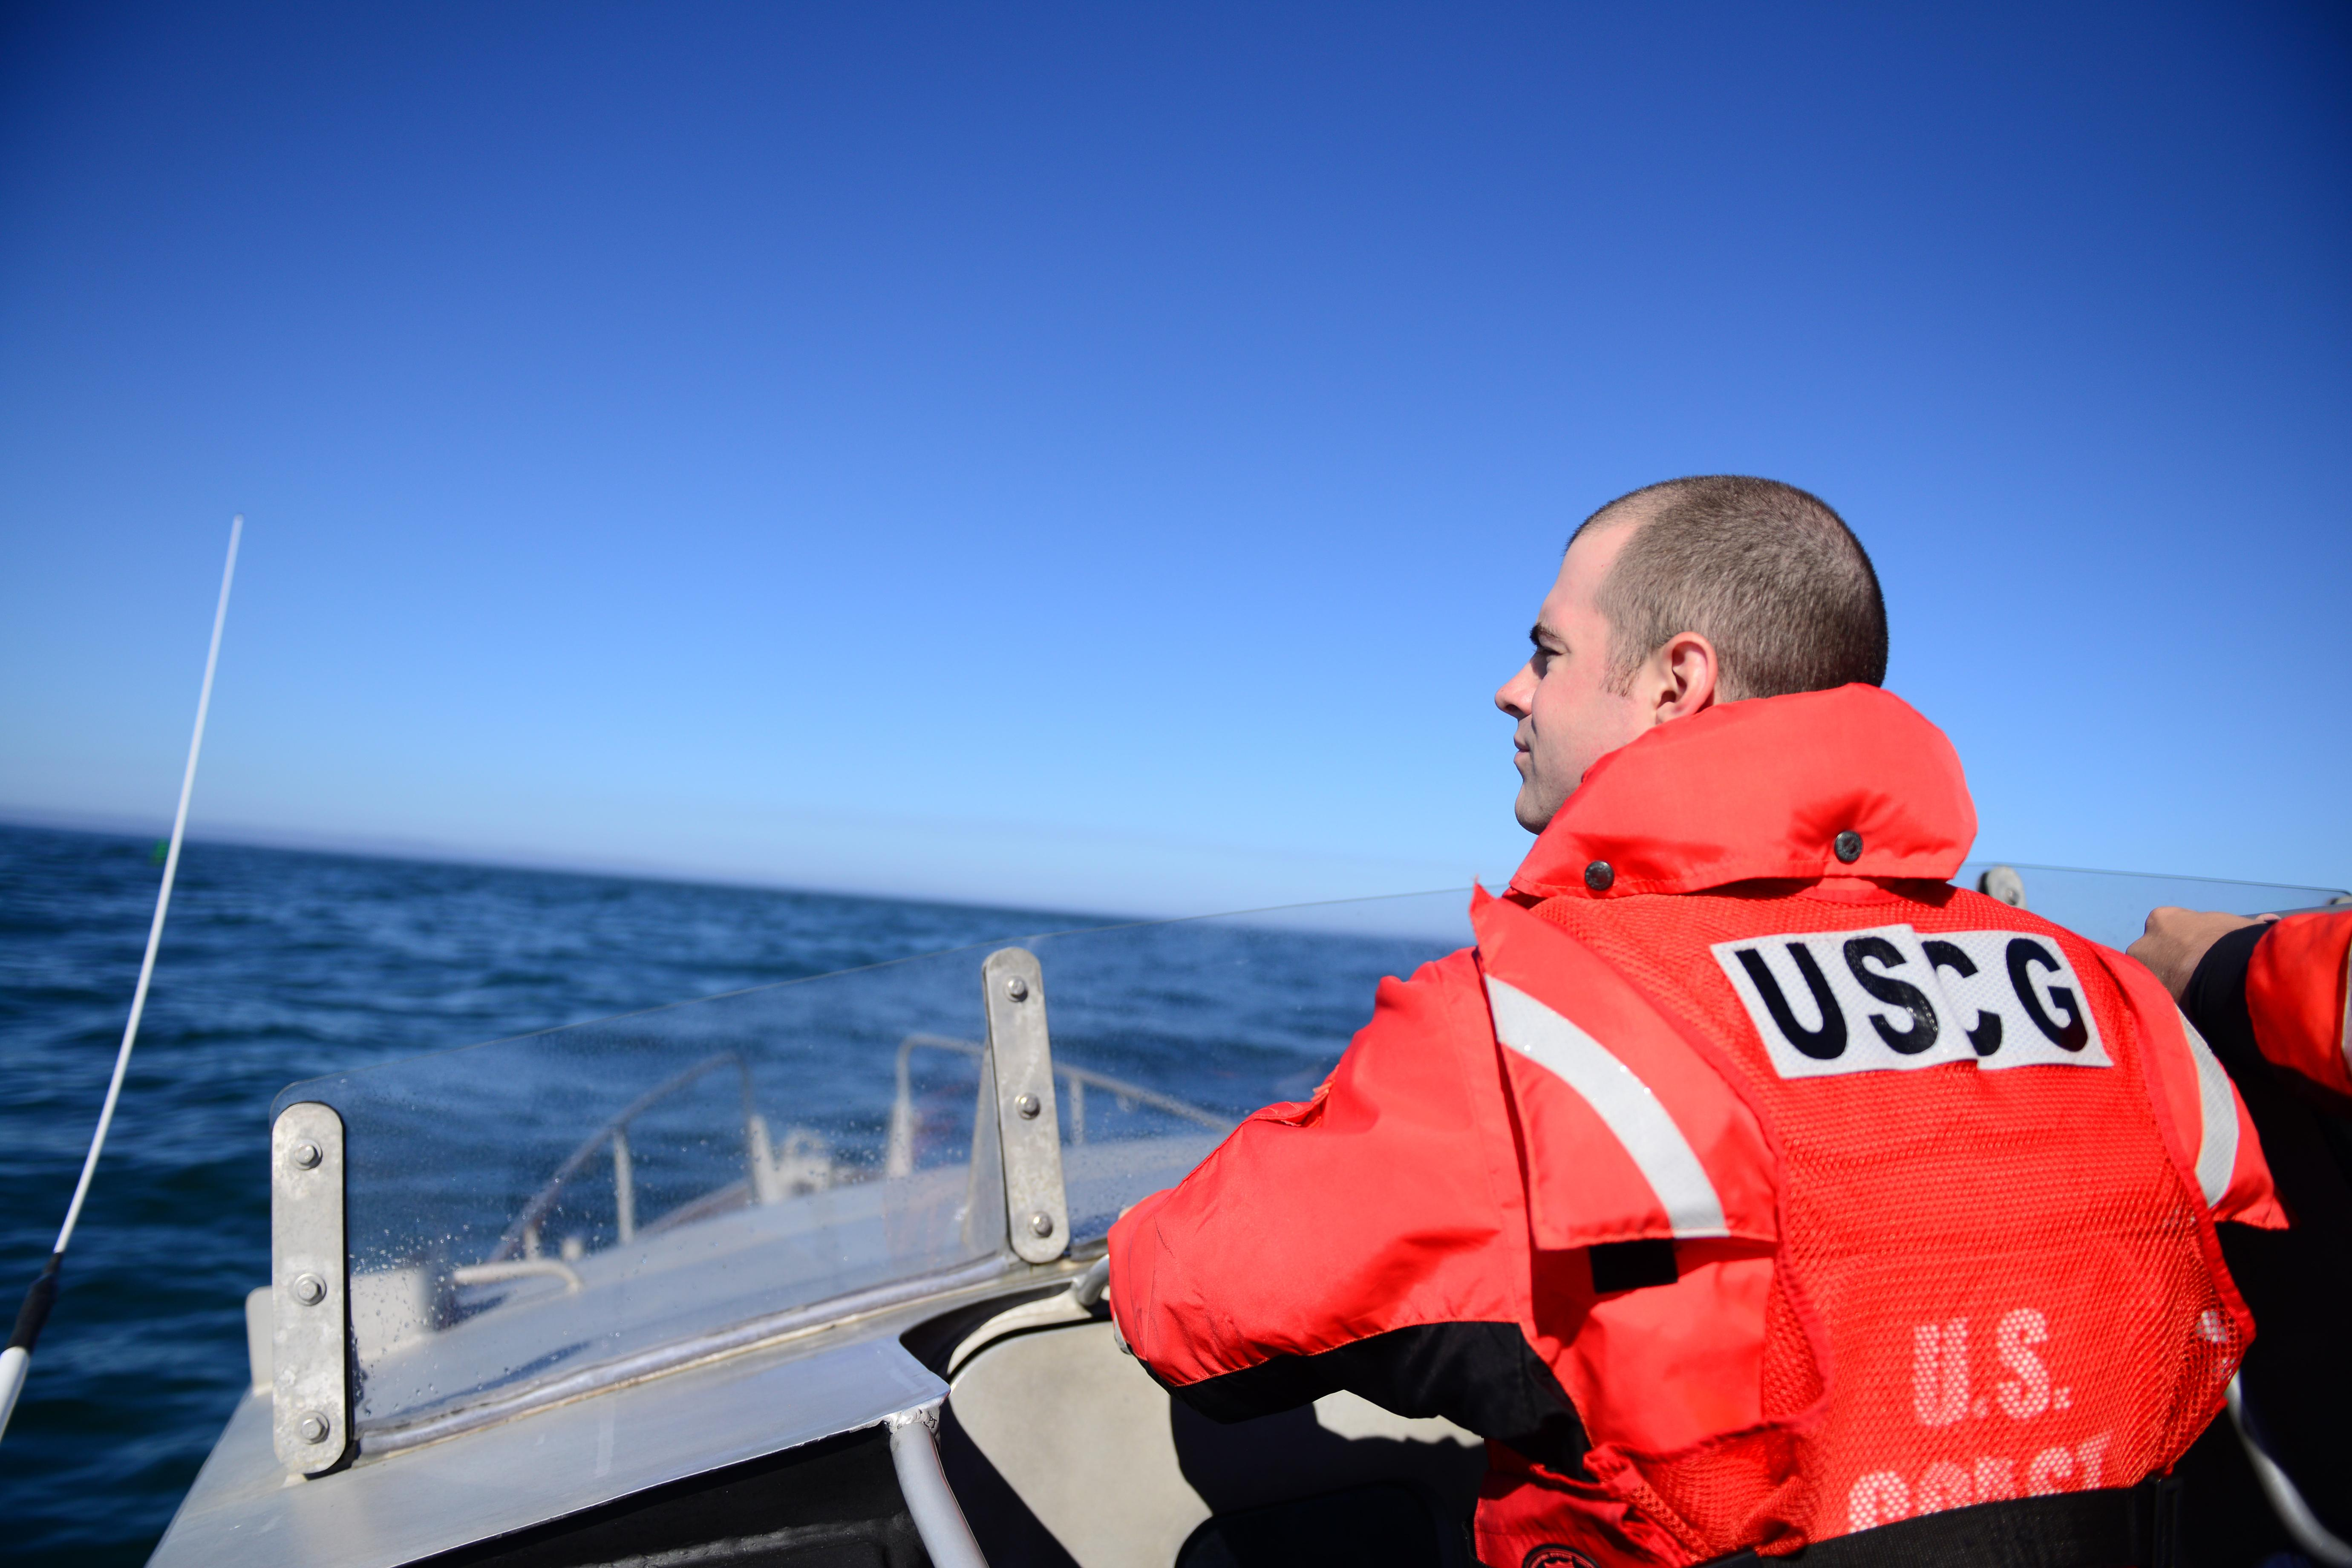 Seaman Cameron Smith, from Coast Guard Station Tillamook Bay, stands a lookout watch as a crewmember aboard a 47-foot Motor Lifeboat enroute to a training evolution in the Pacific Ocean near Garibaldi, Ore., Aug. 24, 2016.    The Tillamook Bay MLB crew trained with an MH-60 Jayhawk helicopter aircrew who practiced delivering a rescue basket to the boatcrew.    U.S. Coast Guard photo by Petty Officer 1st Class Levi Read.